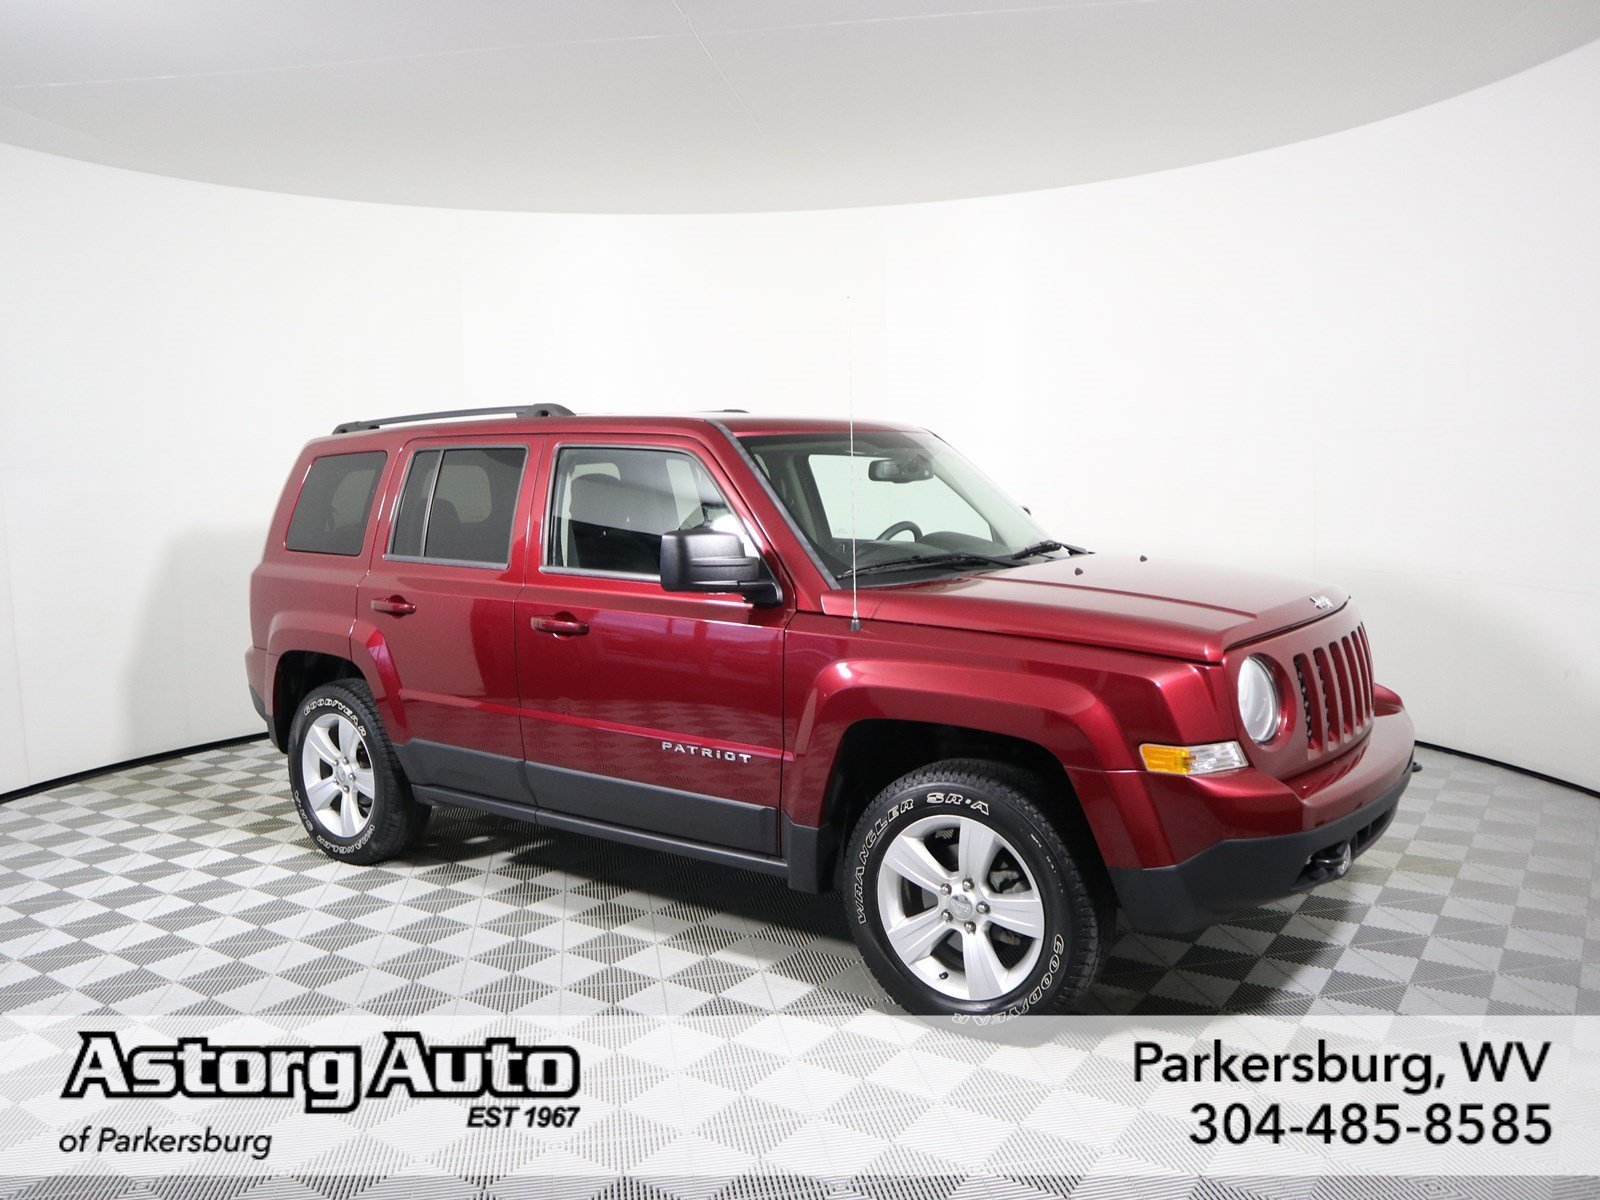 certified pre owned 2016 jeep patriot latitude sport utility in rh astorgauto com